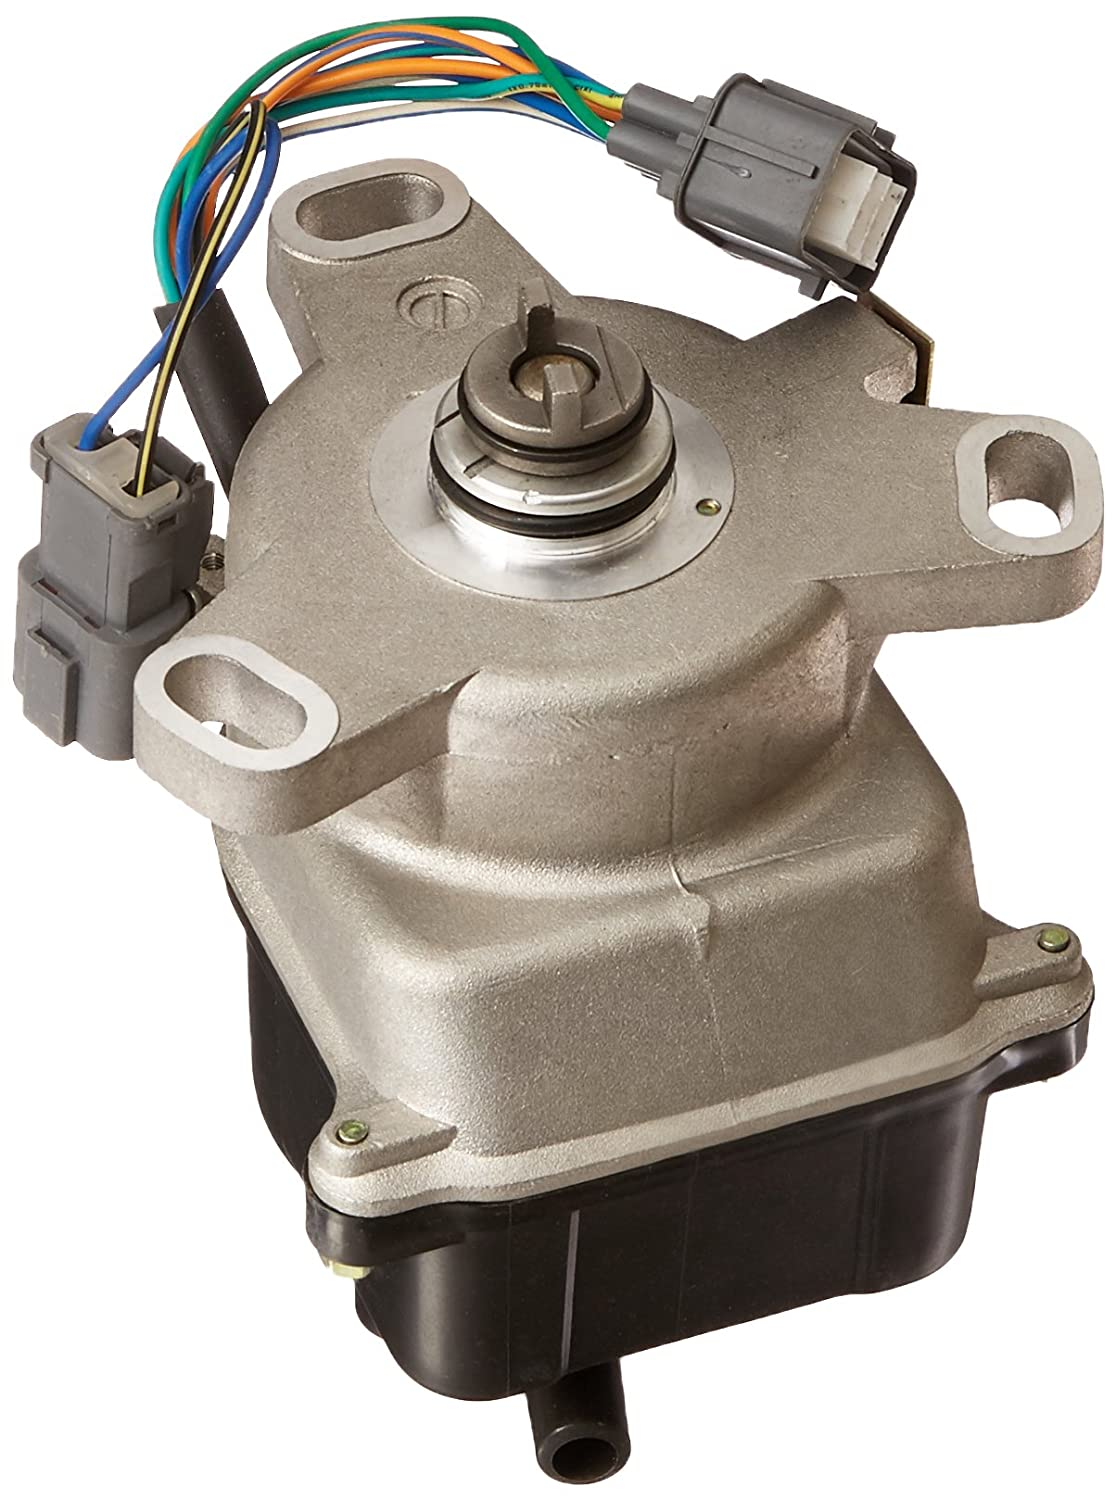 Ignition Distributor for HONDA Civic DX, CX, LX NON V-TEC fits TD-41U / TD-47U / TD41U / TD47U Parts Galaxy DST102